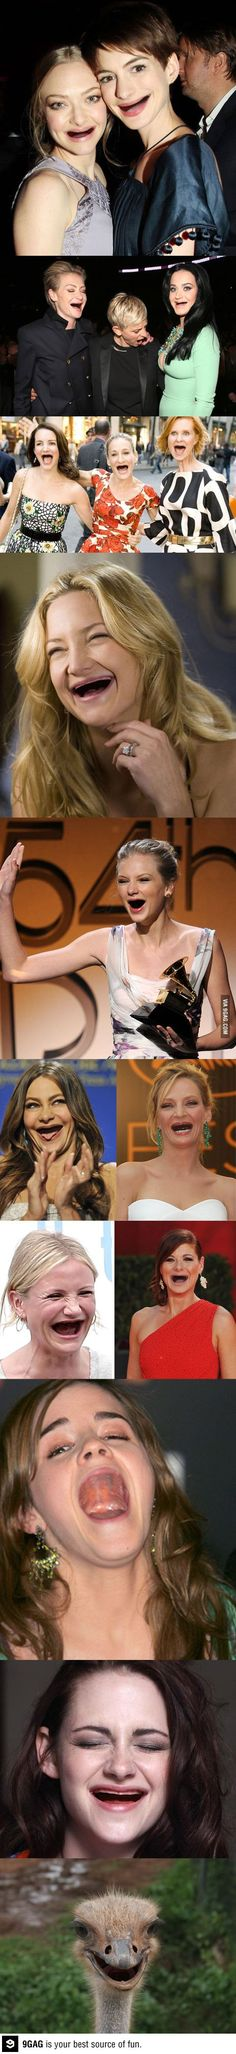 Actresses without teeth - for the love of all things holy, please take care of your teeth, folks.